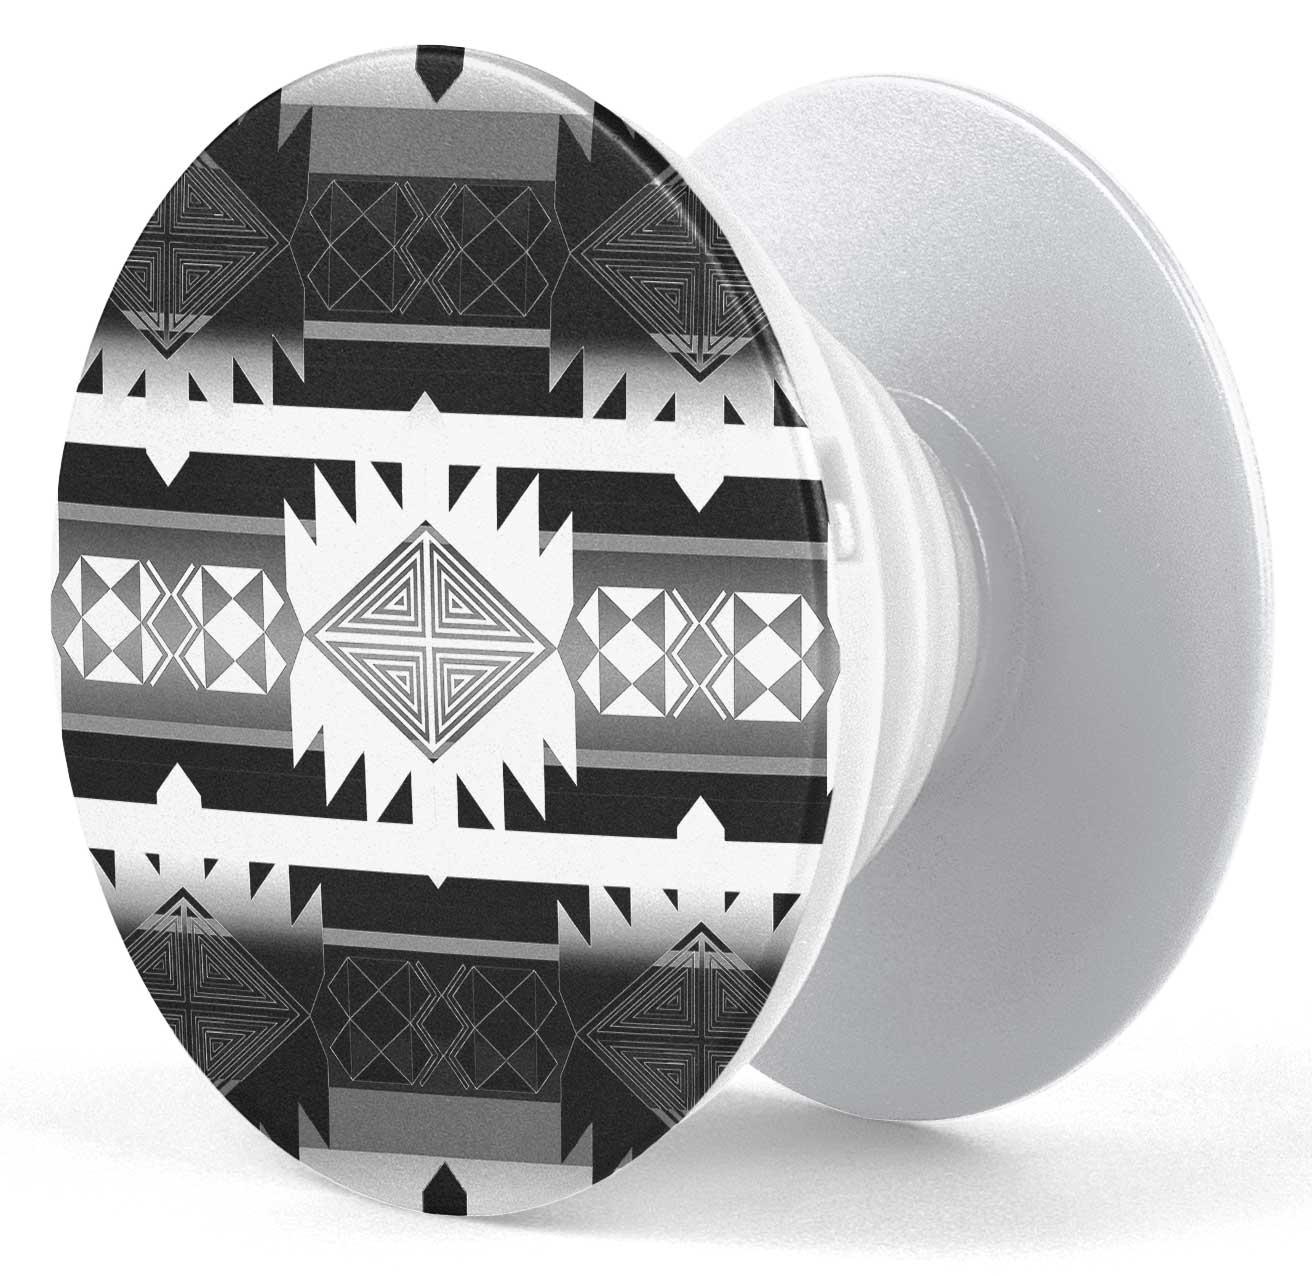 Okotoks Black and White Pop socket (White) PopSocket 49 Dzine